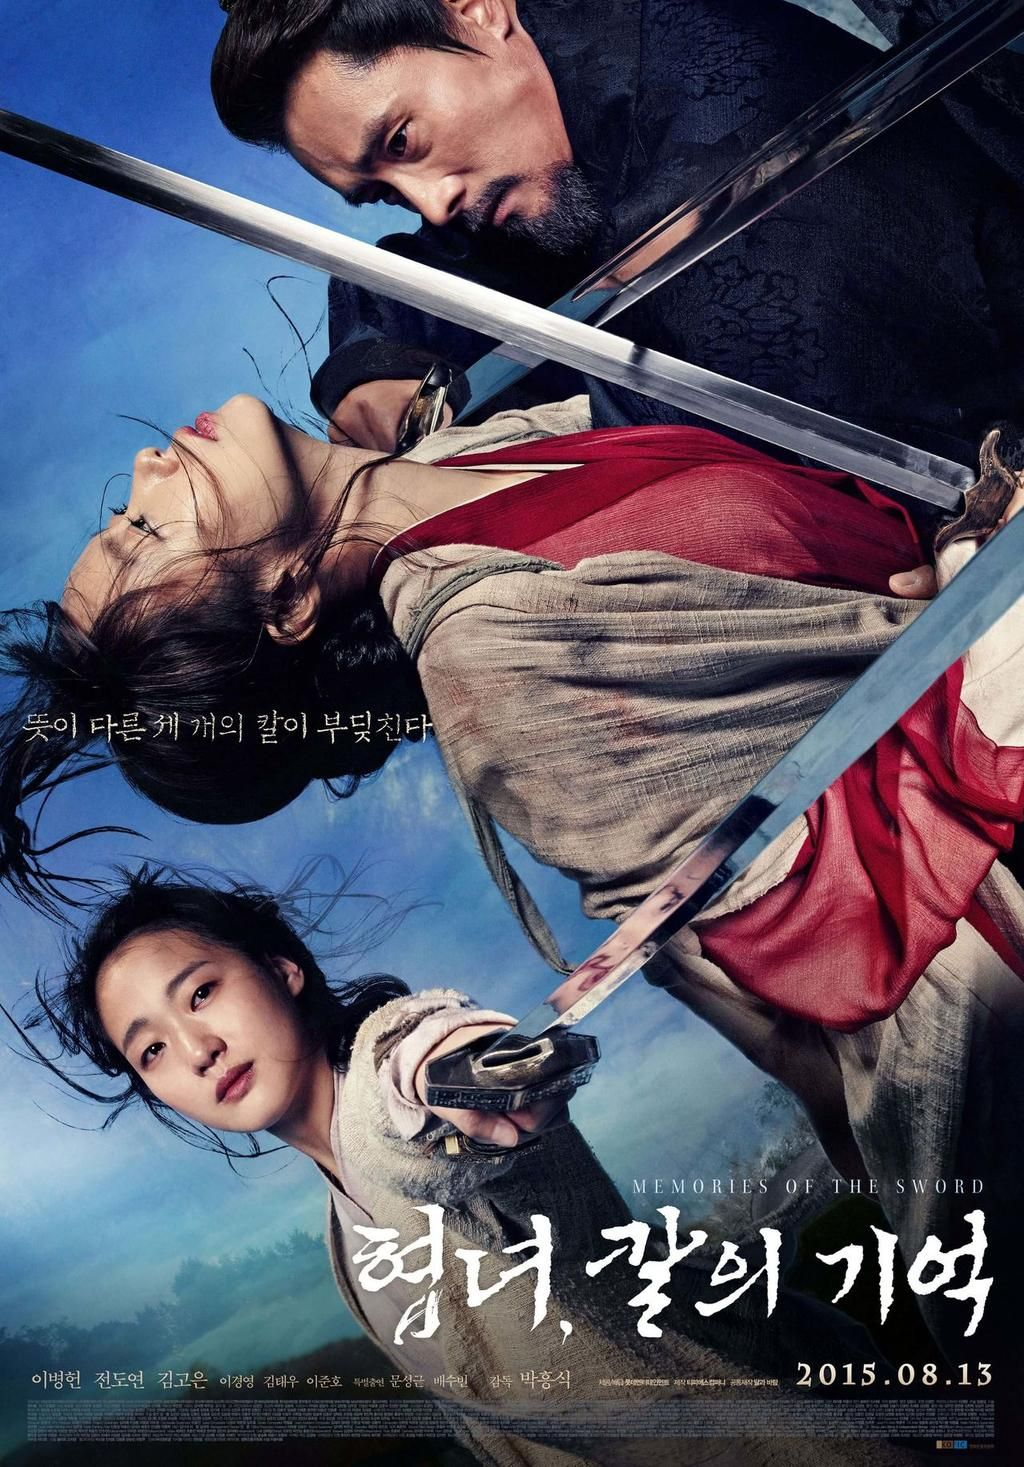 Free Download Korean Movie Memories of the Sword Subtitle